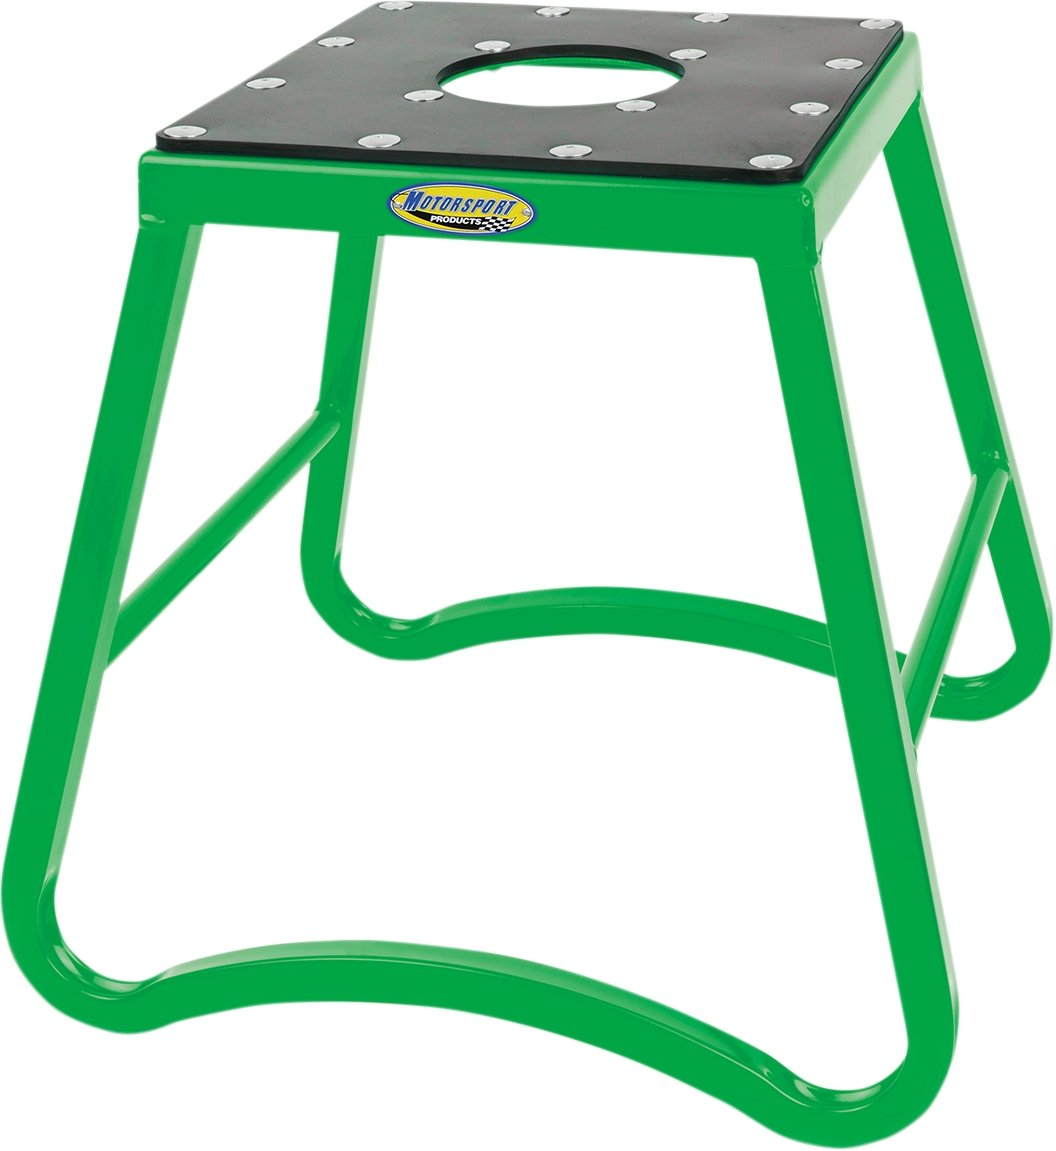 Motorsport Products SX1 Mini Stand - Green 964105